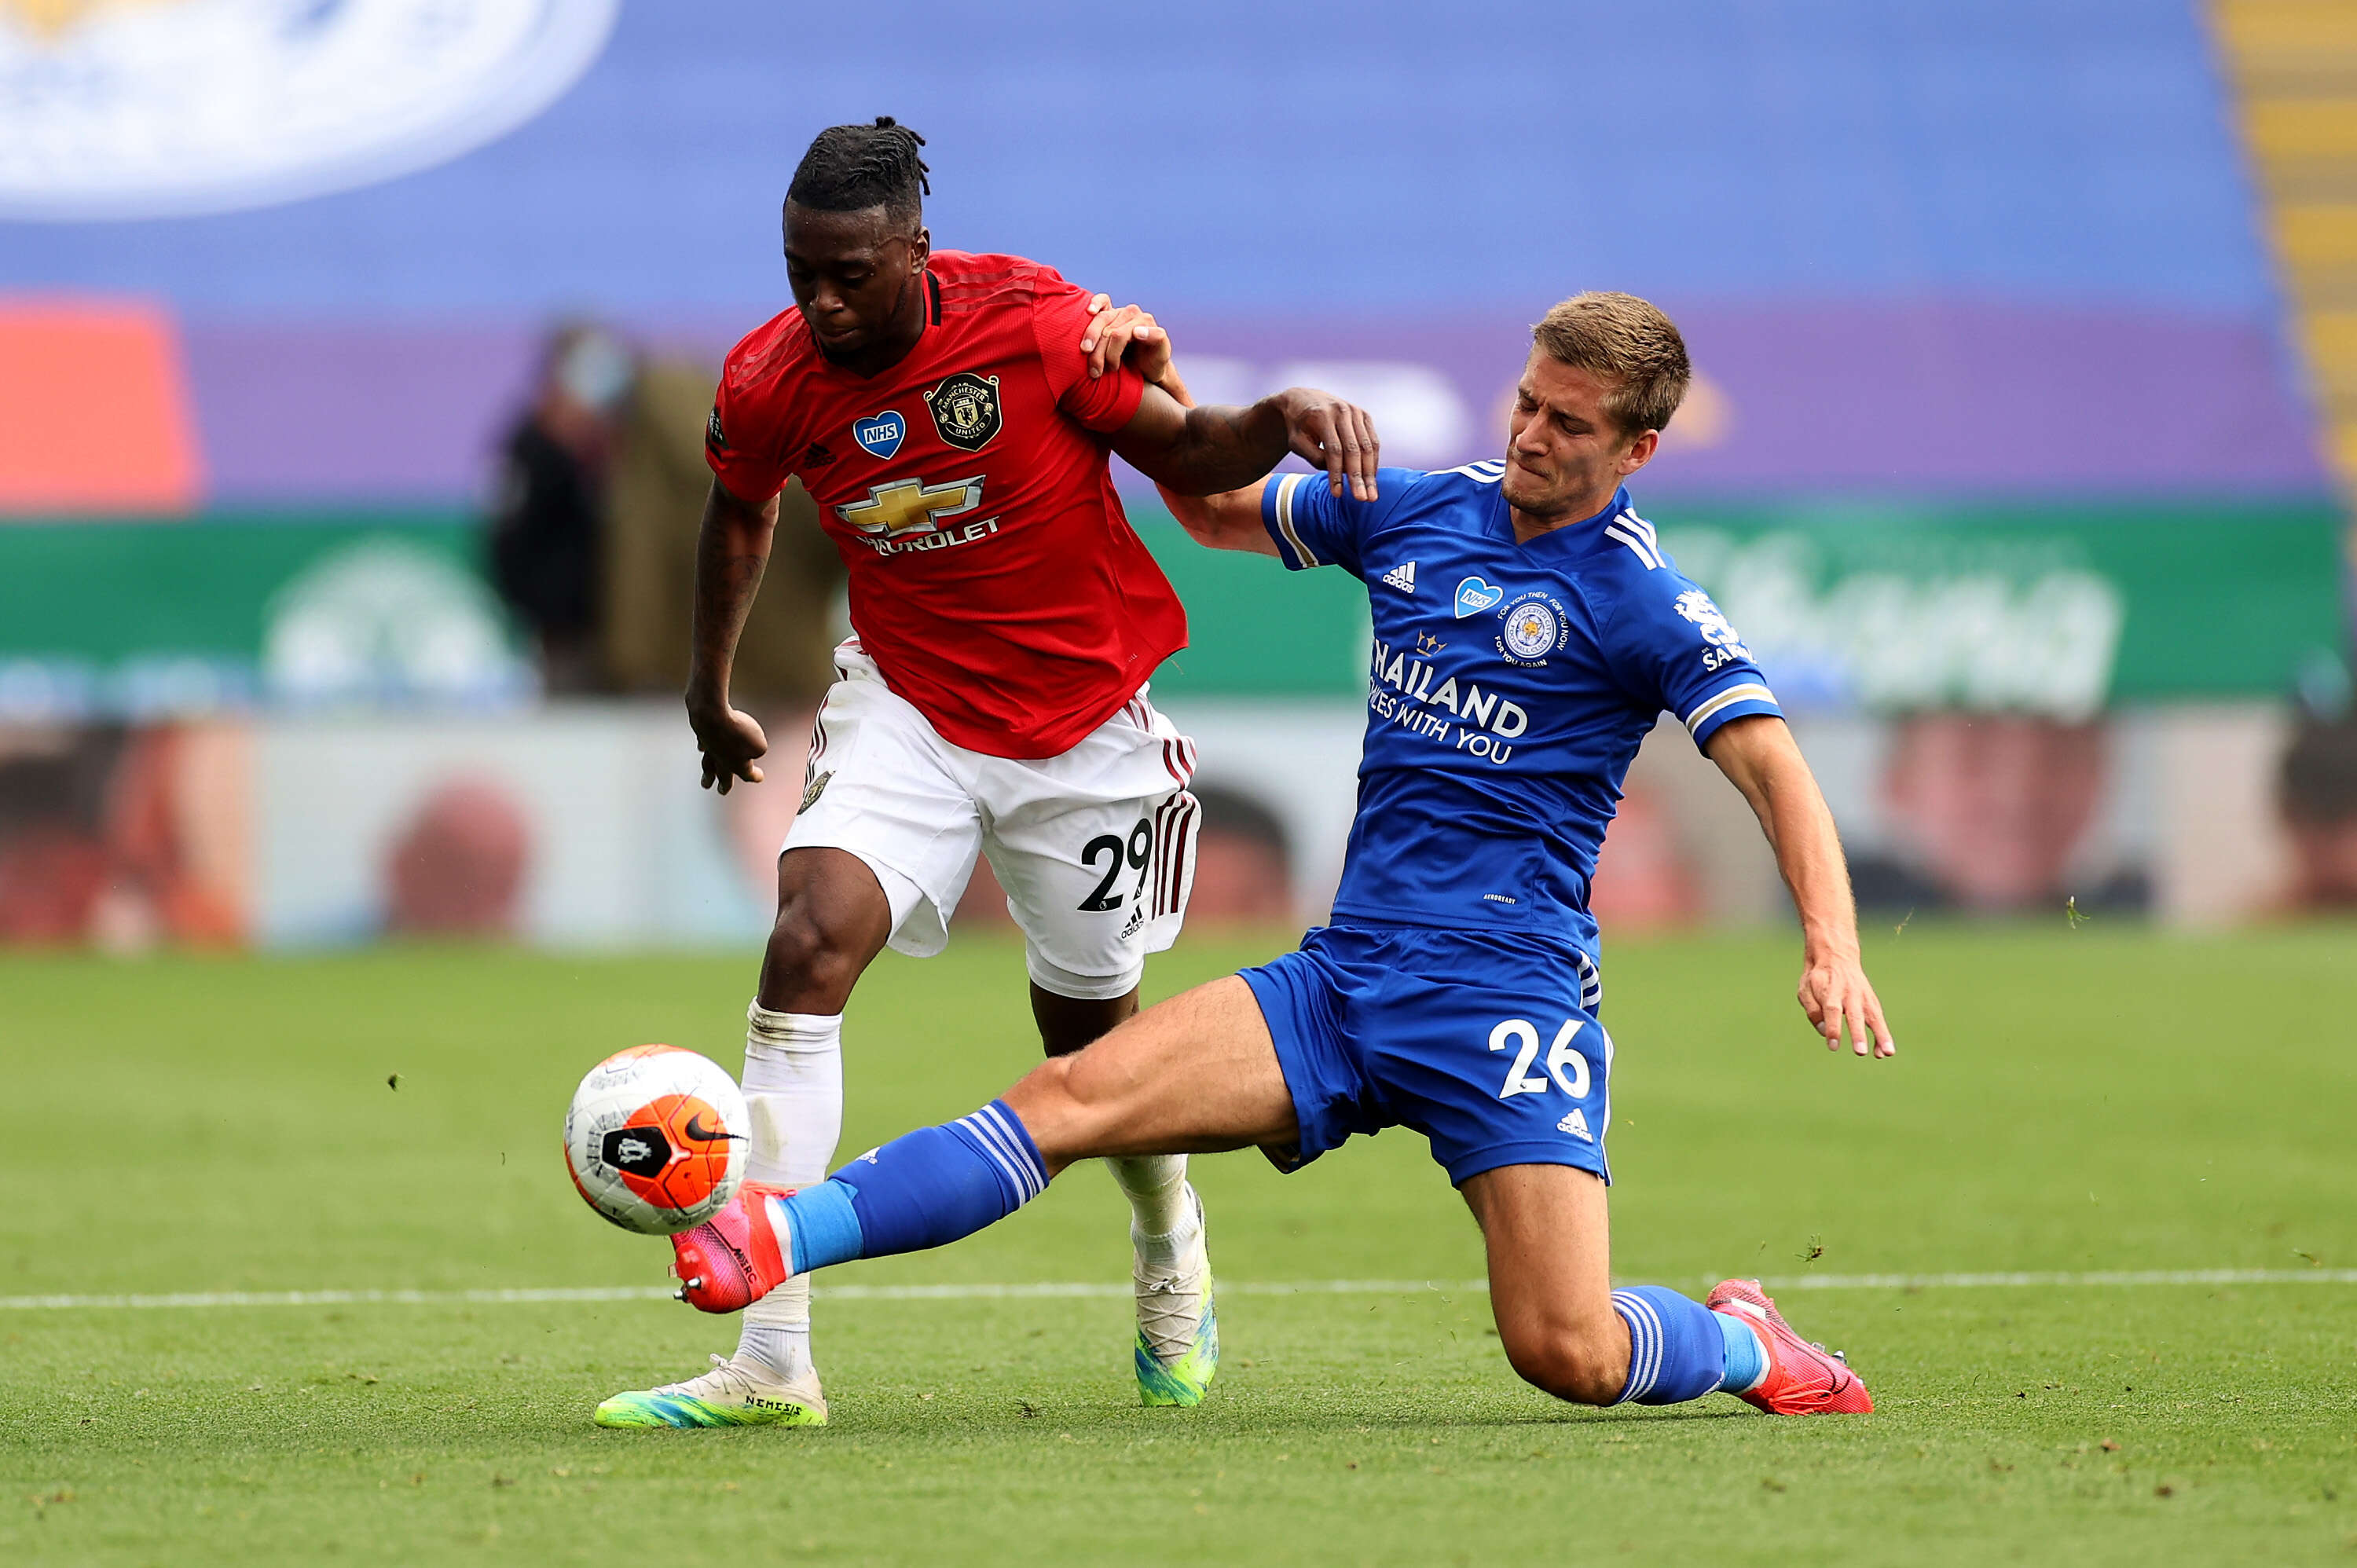 Leicester city take on Manchester United as Premier League actions return on Boxing Day